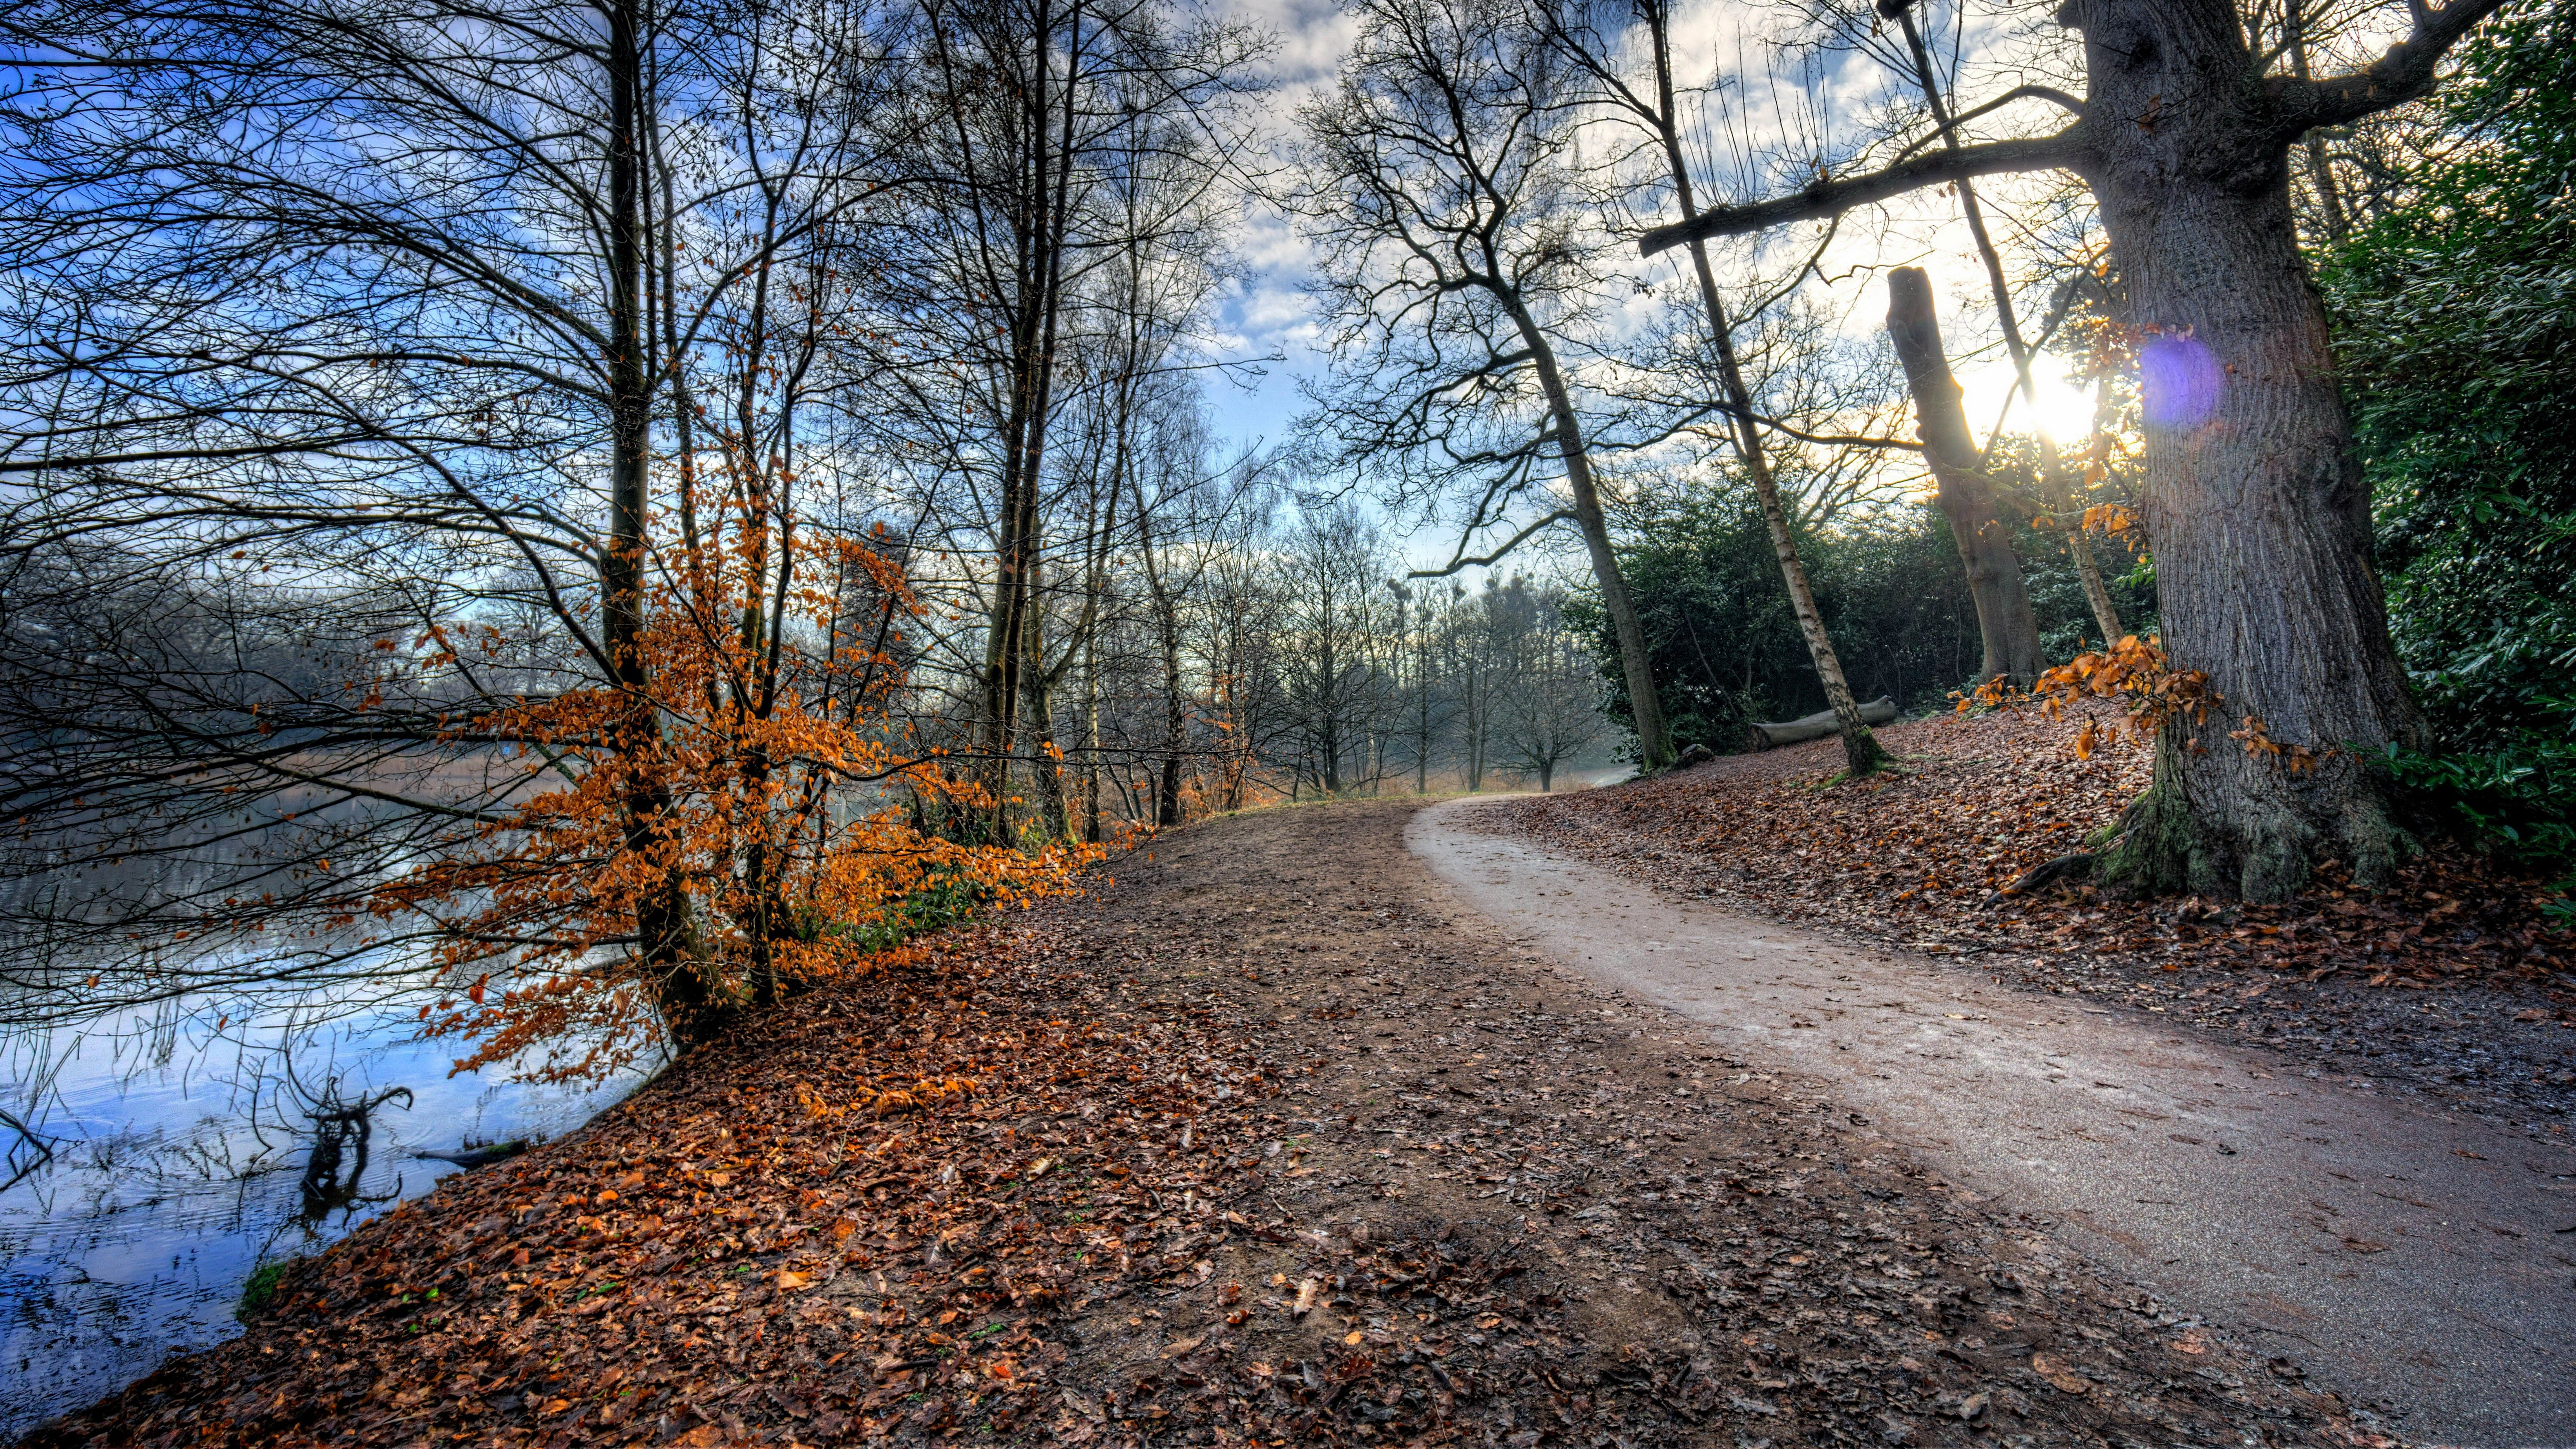 ultra hd wallpapers 8k 7680x4320 nature,natural landscape,tree,nature,woodland,trail